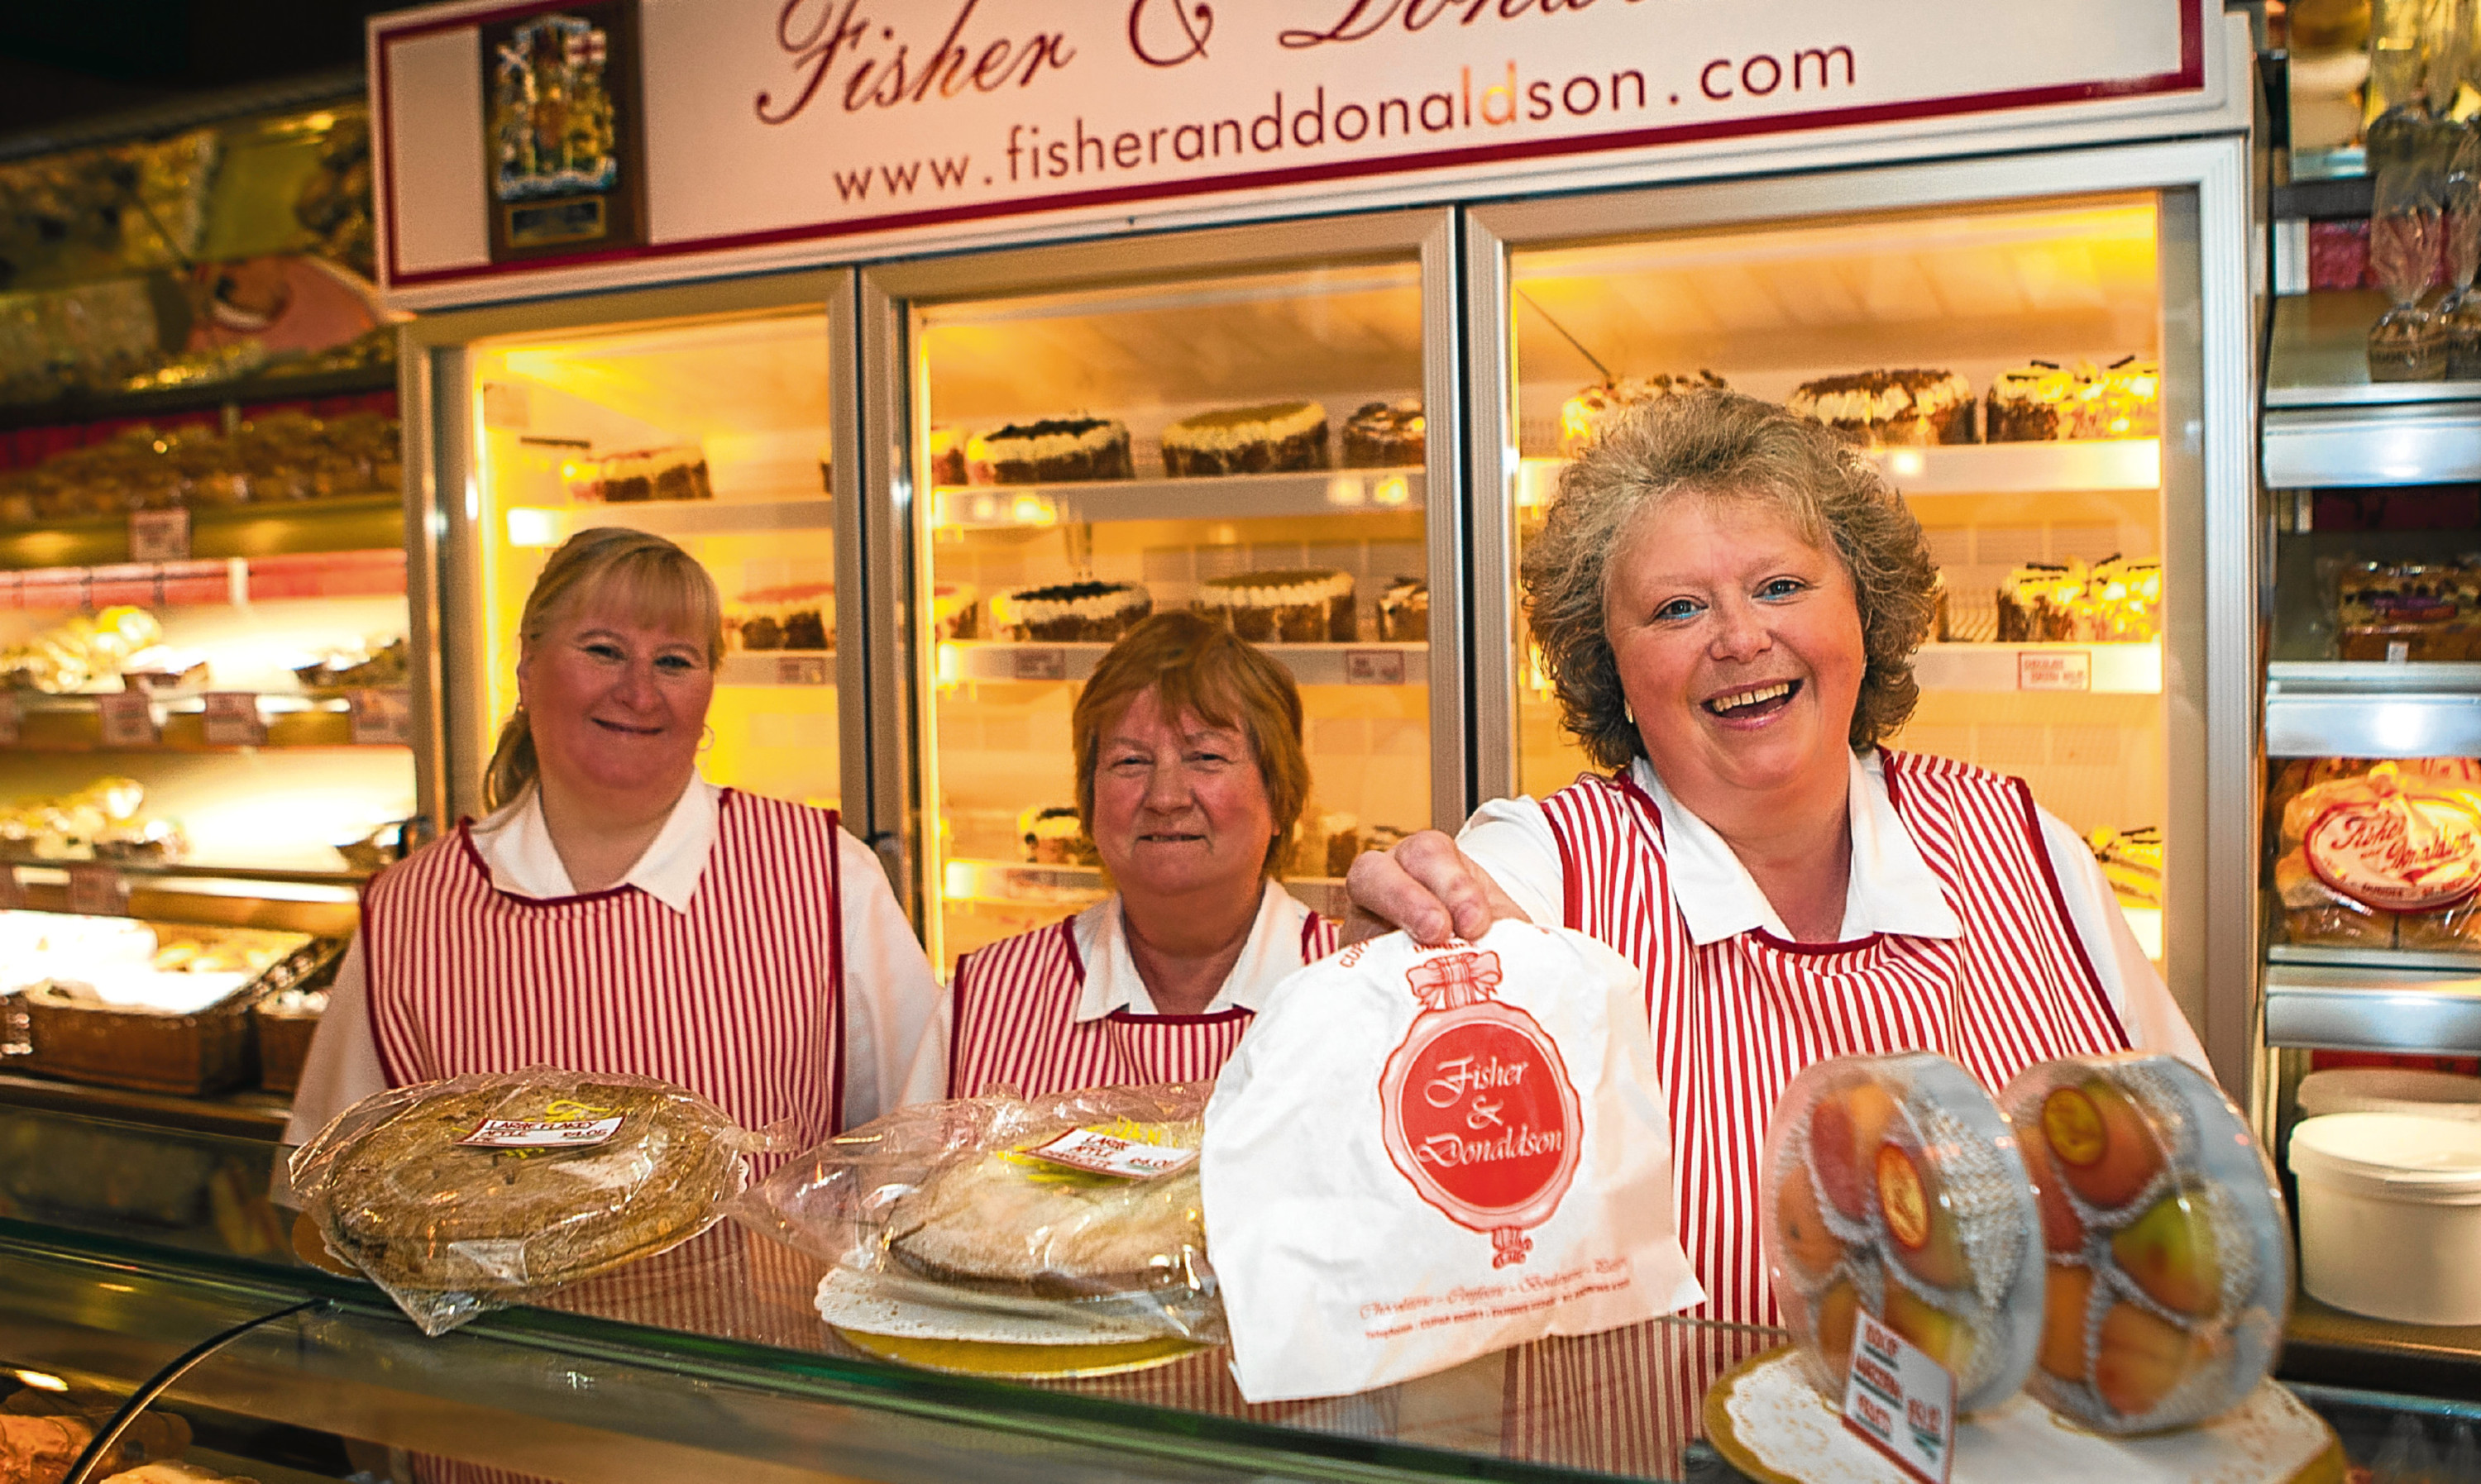 Service with a smile: Baker Fisher &Donaldson was among those taking part in Dundee Independents Day 2017.